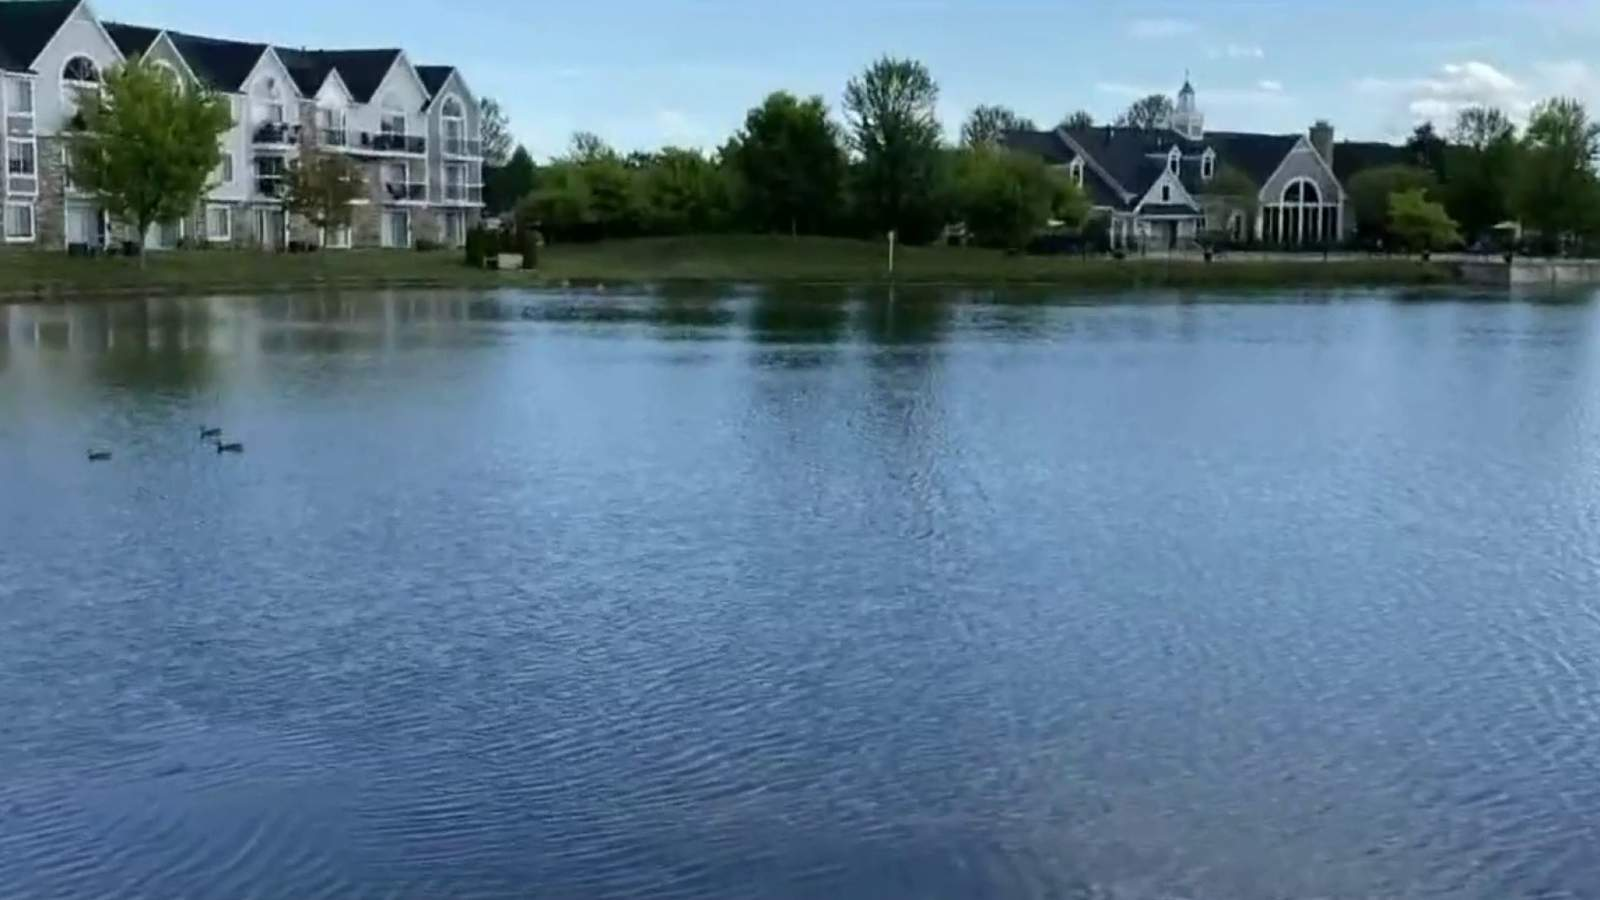 30-year-old father drowns in Belleville pond after being encouraged to take bet